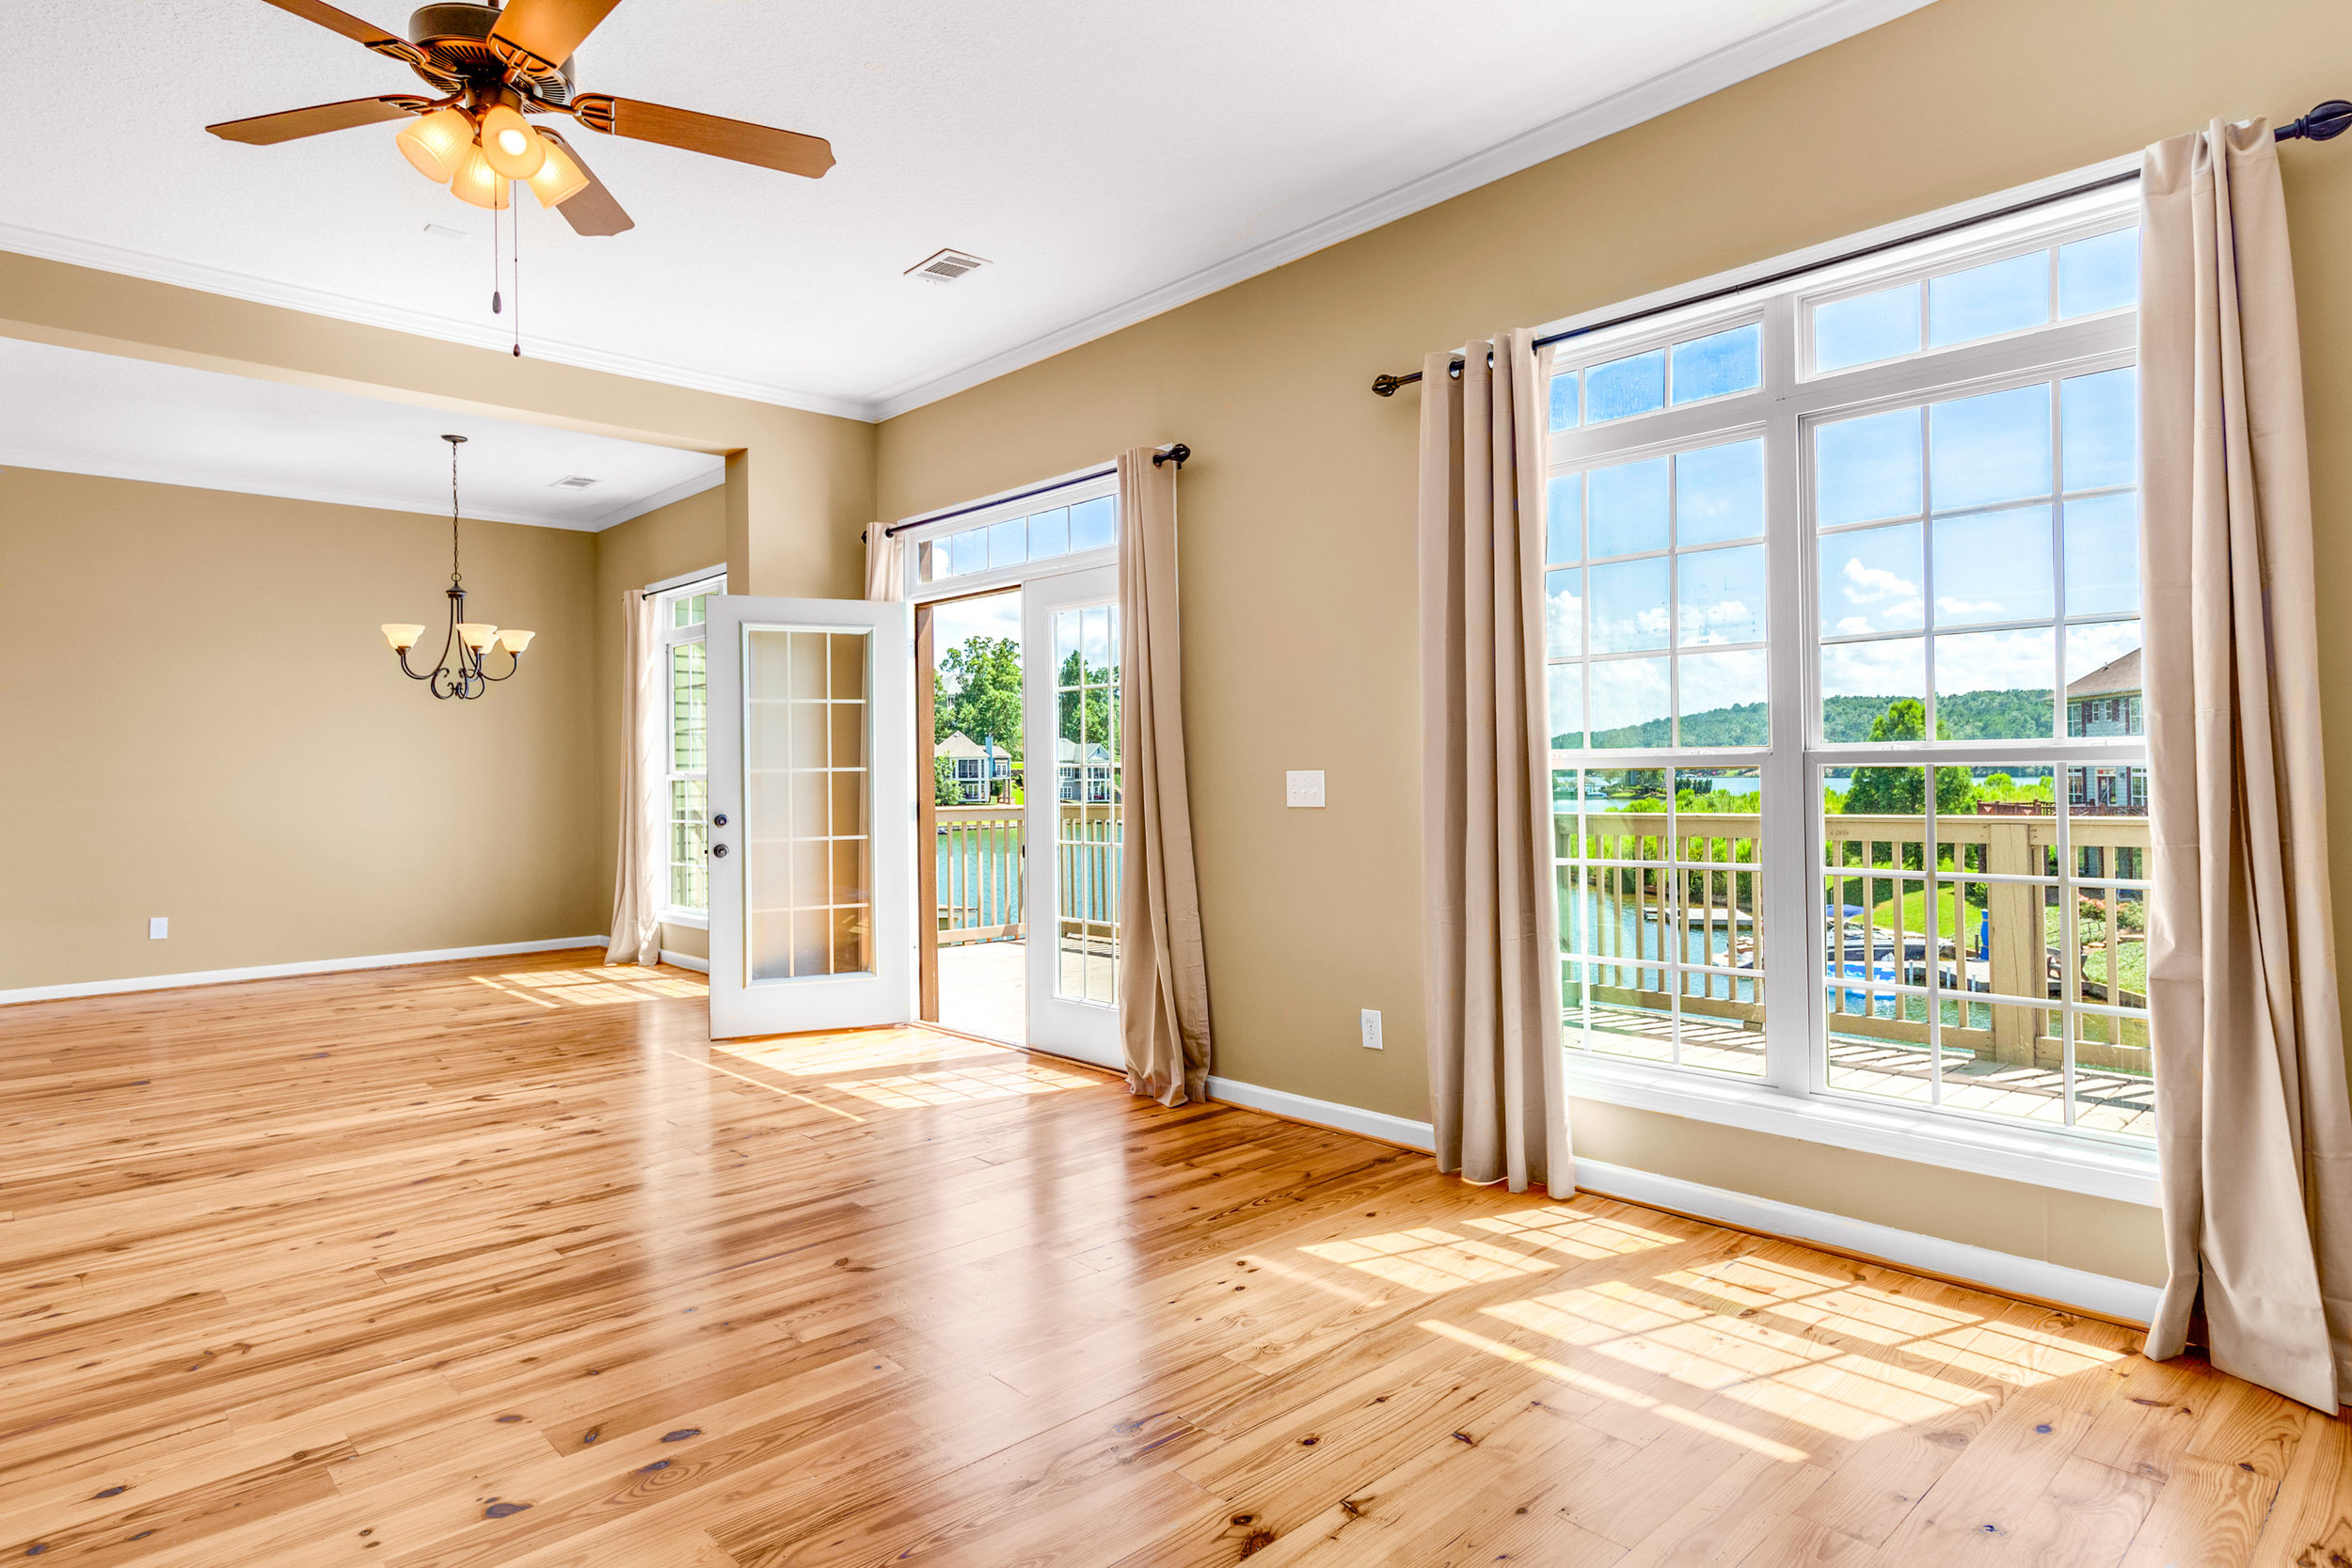 Real Estate Photographer and House Property Airbnb Photographer-1.jpg